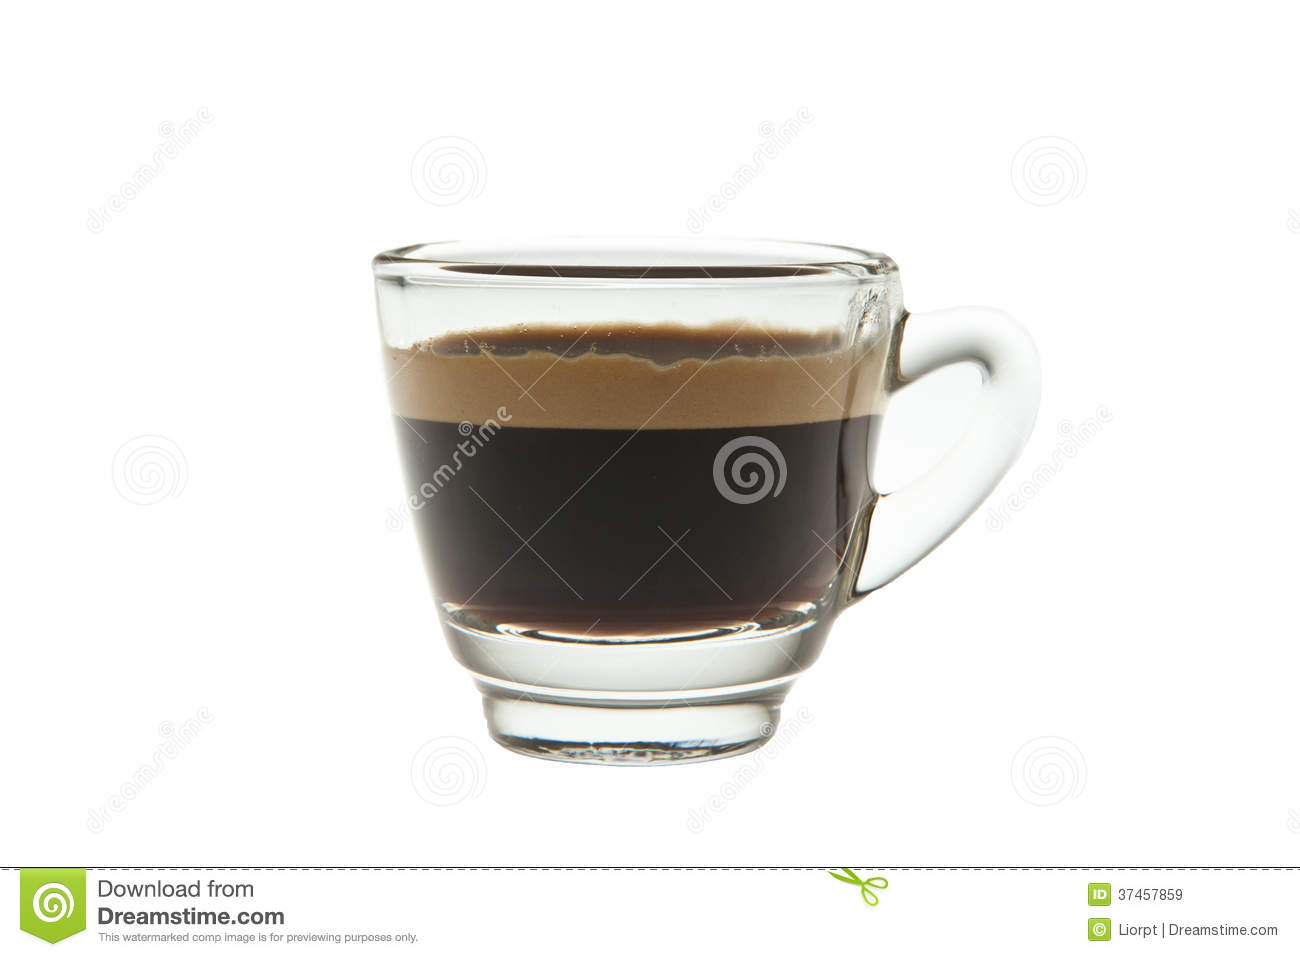 Espresso Shot Glass Royalty free stock images: espresso shot glass: galleryhip.com/espresso-shot-glass.html